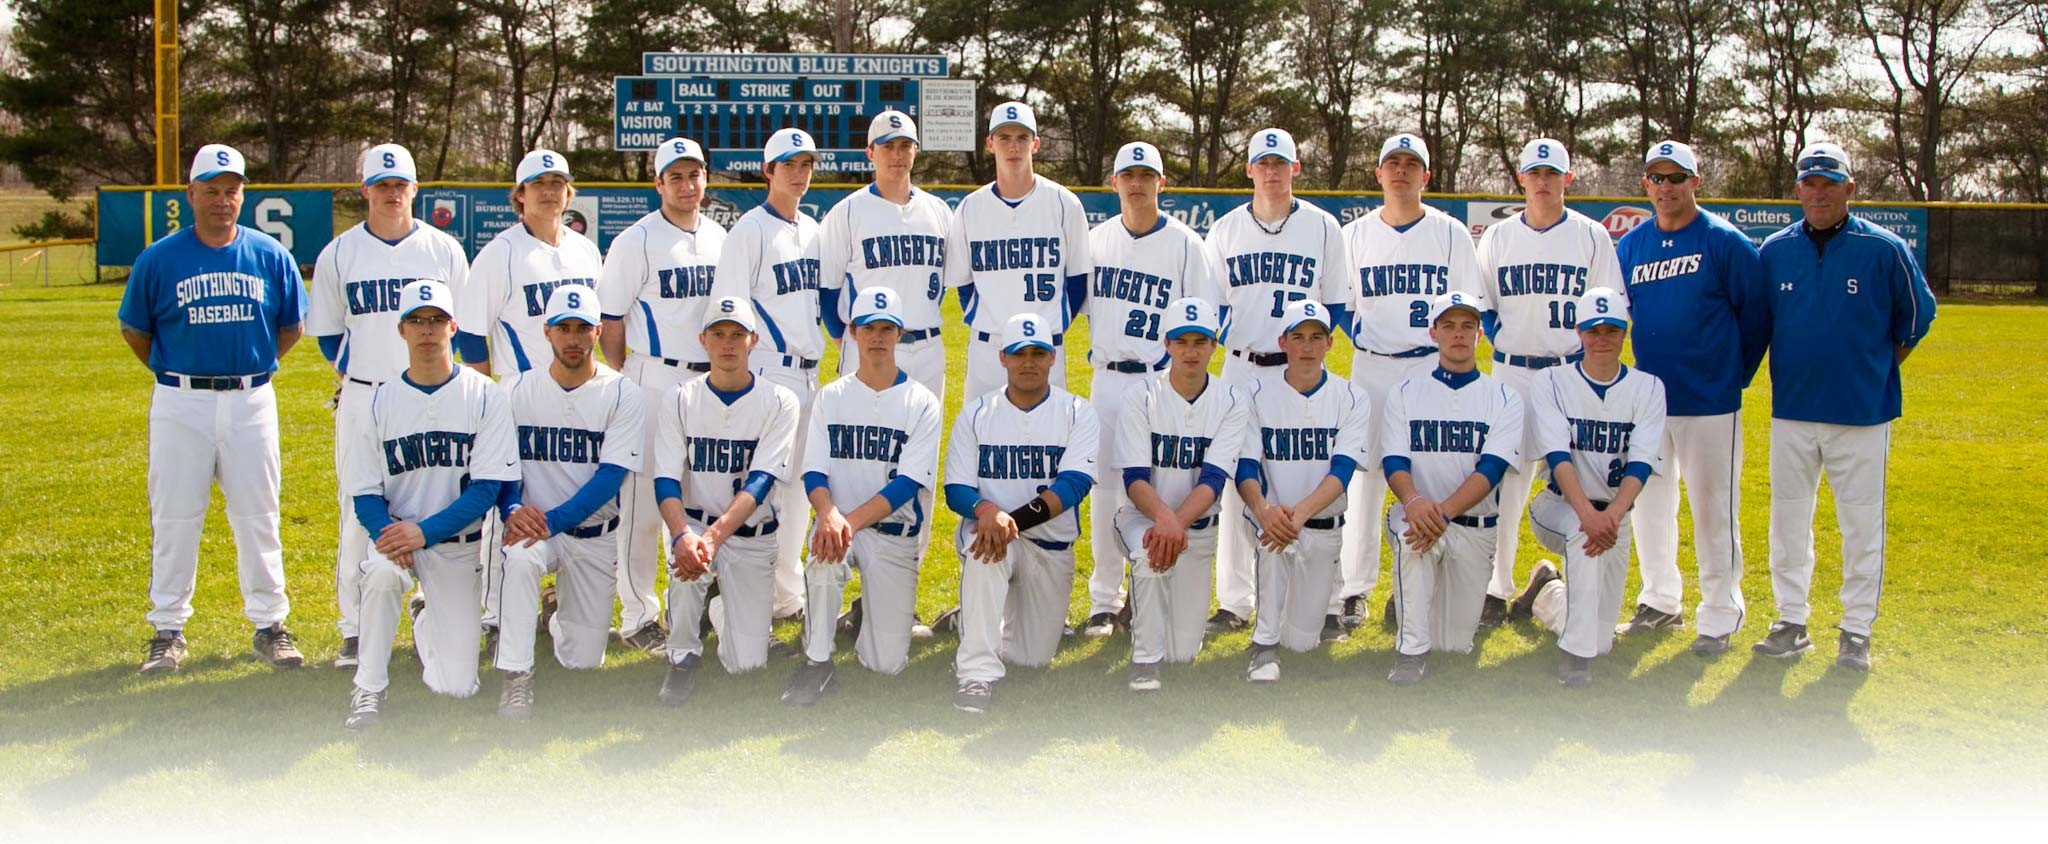 southington baseball